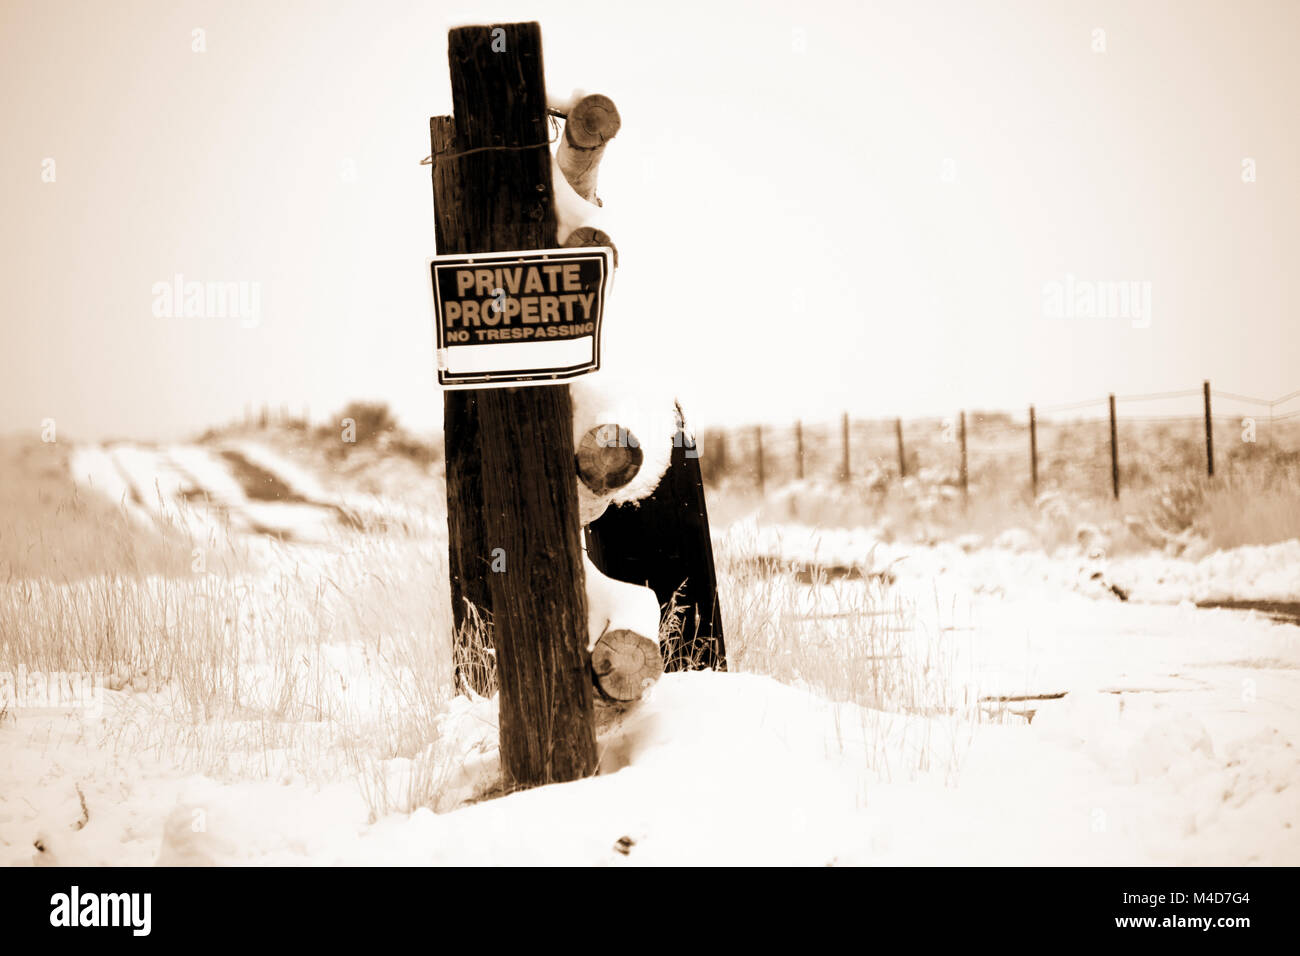 An old tire leaning up against a fence post in the Utah desert patched with snow in sepia. - Stock Image